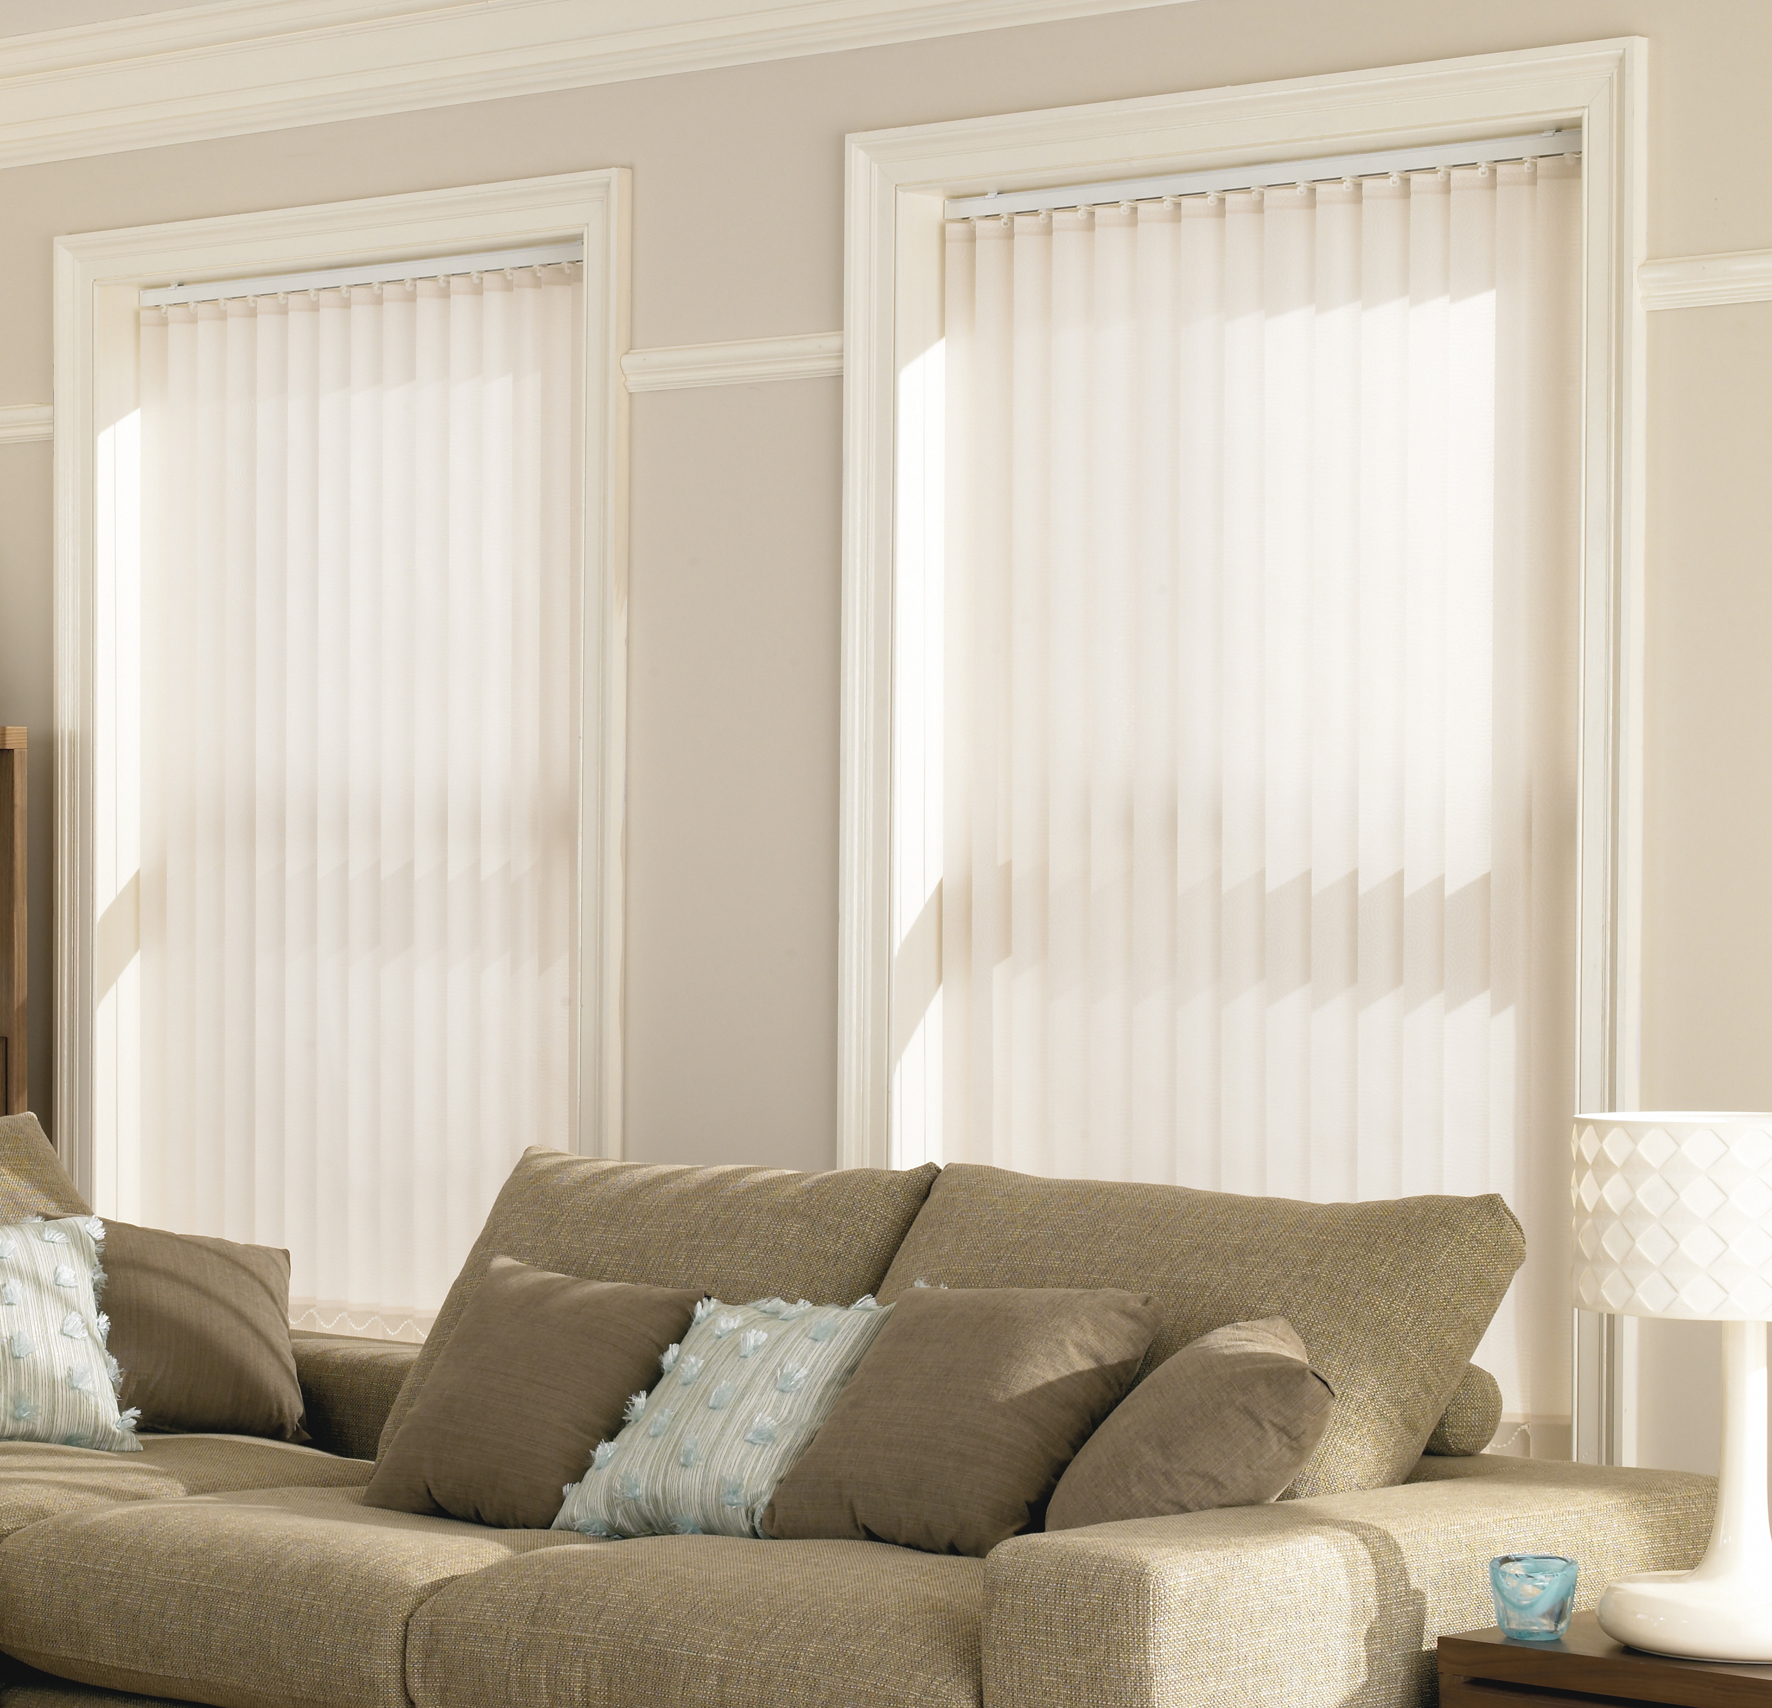 Vertical blinds are now available in the latest digital print designs